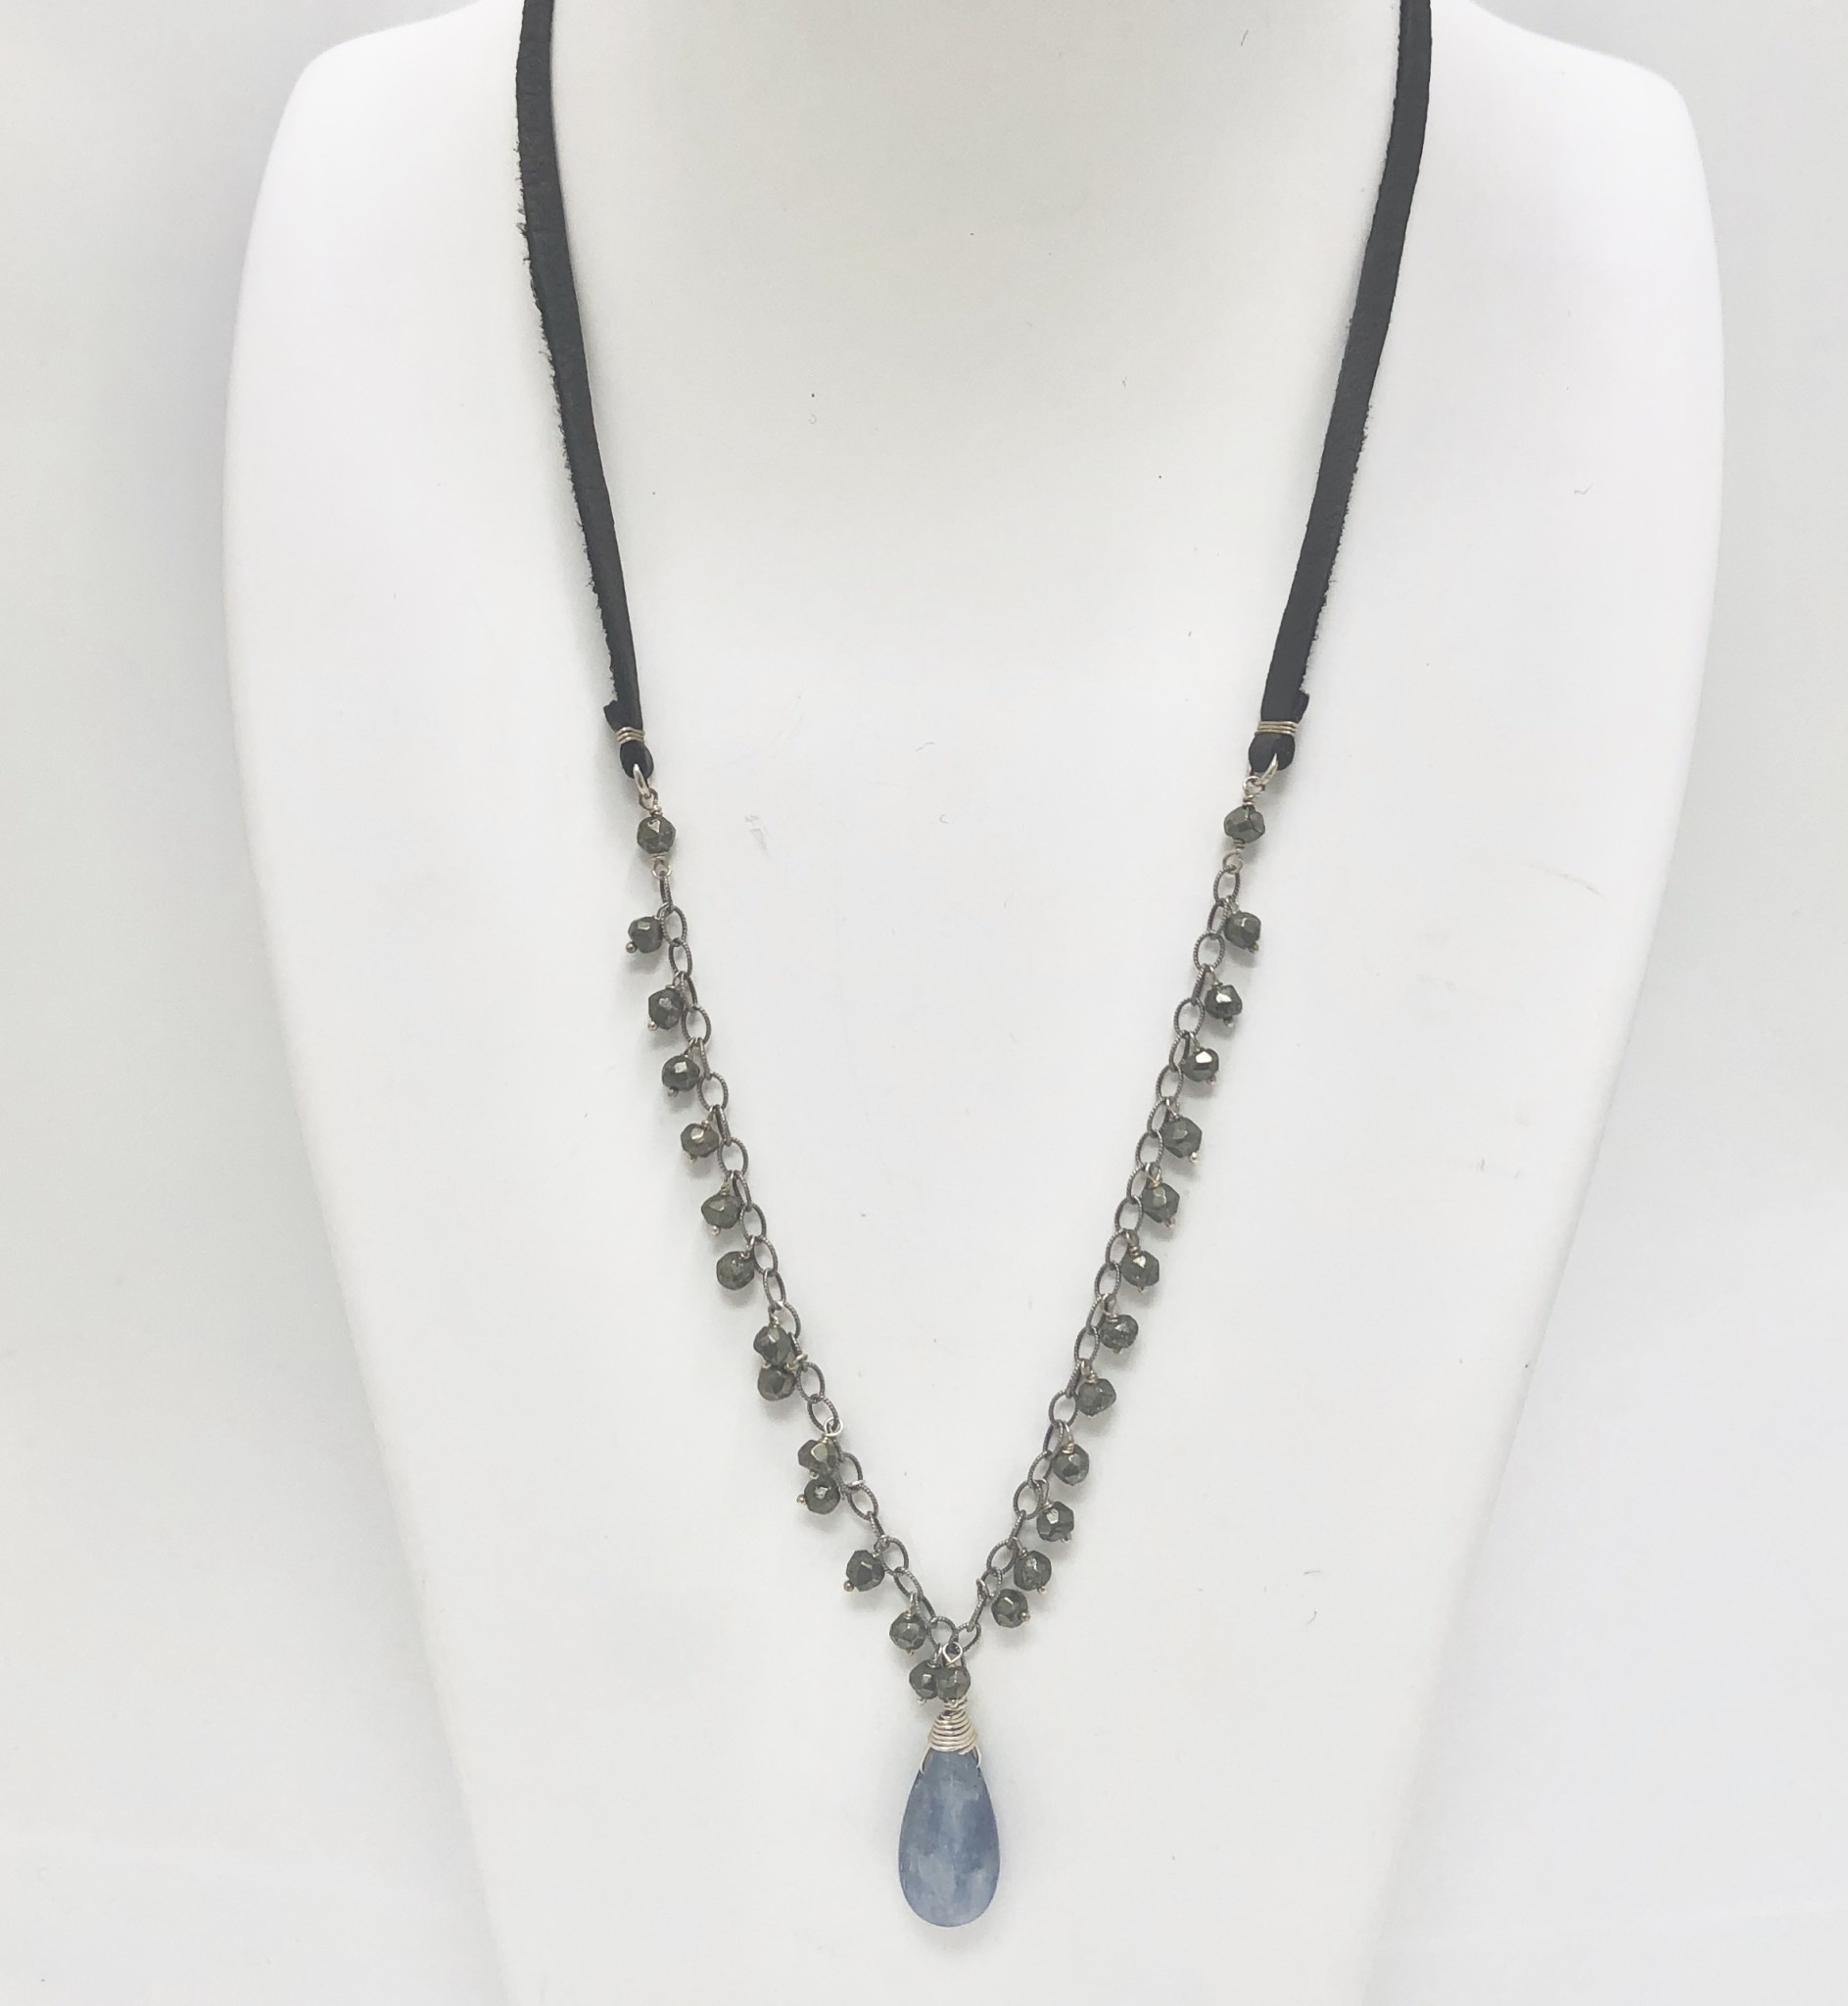 Pyrite Dangles with Kyanite Droplet Necklace